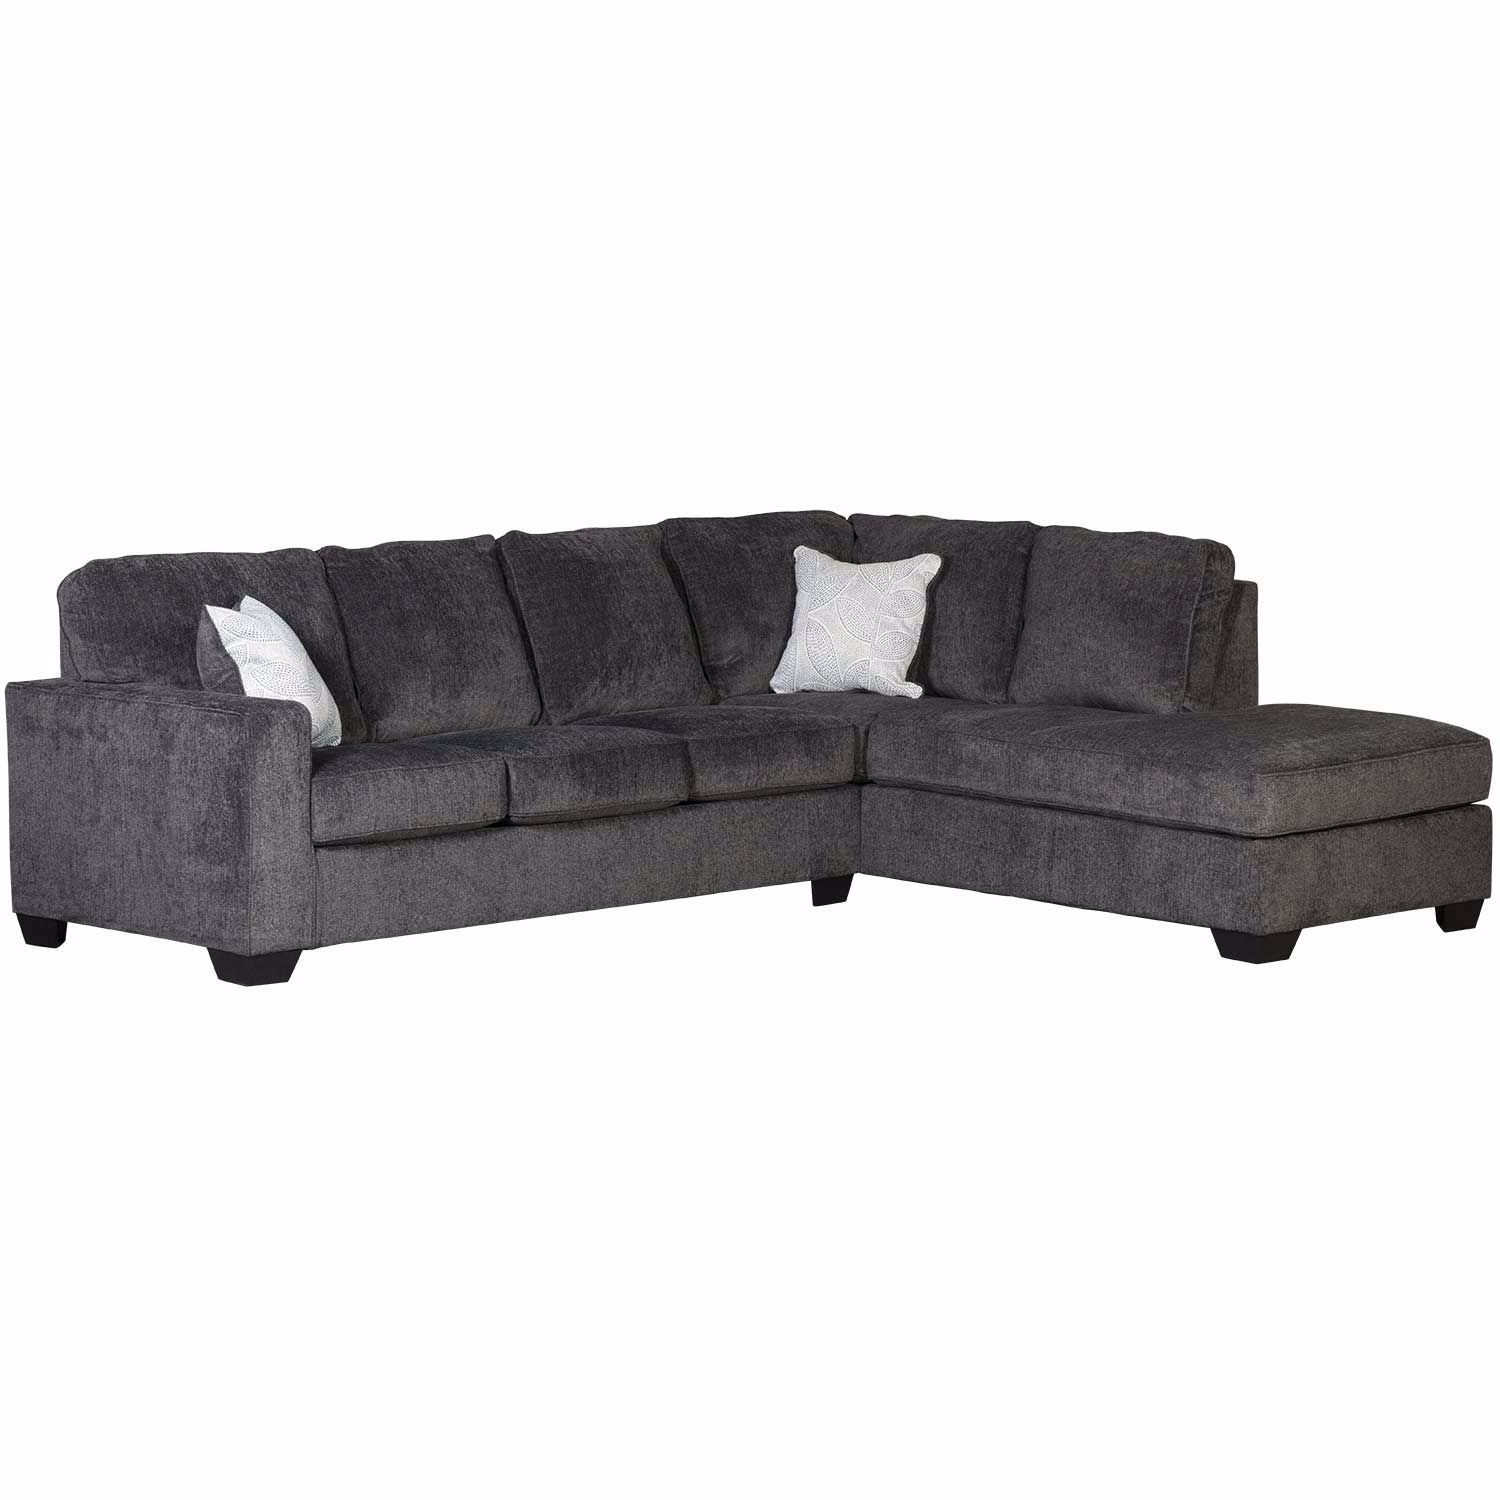 Peachy Altari Slate 2 Pc Sectional With Raf Chaise Alphanode Cool Chair Designs And Ideas Alphanodeonline